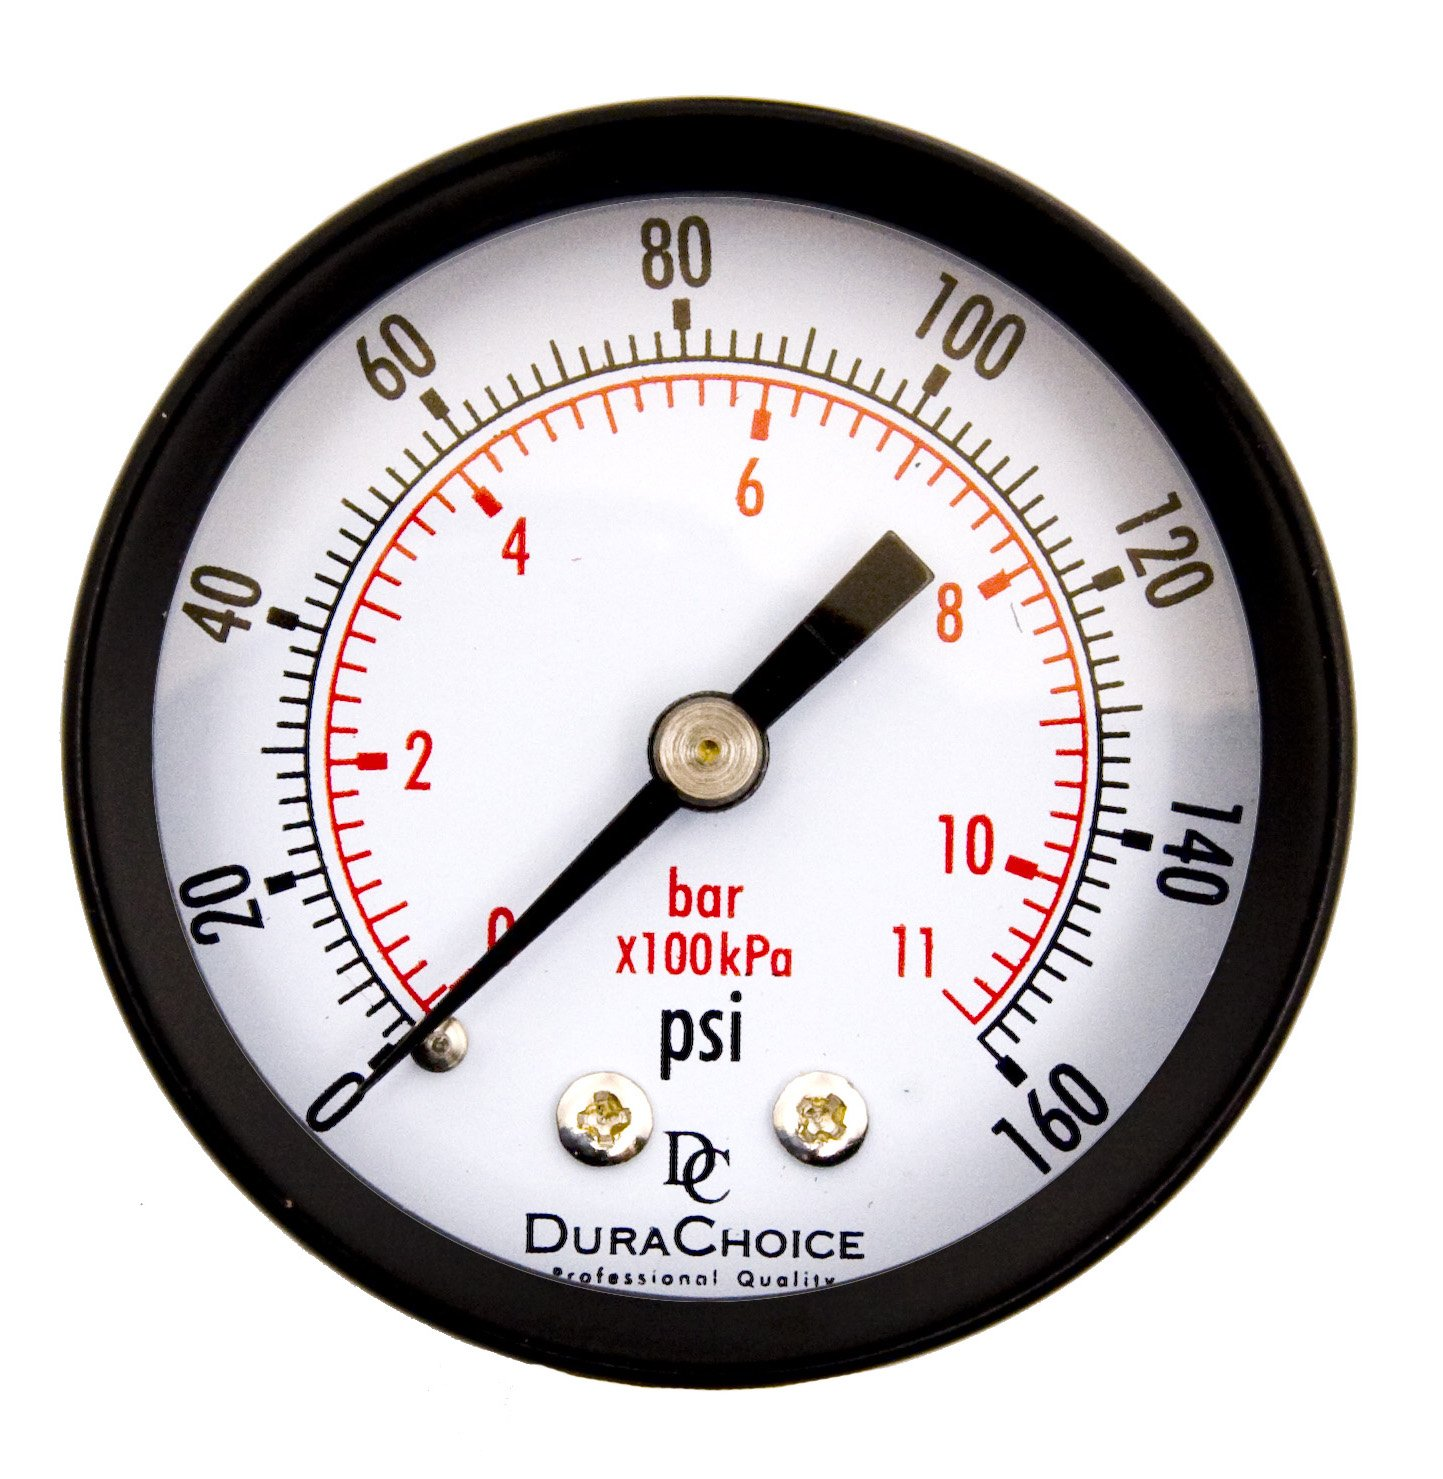 "DuraChoice 2"" Dial Utility Pressure Gauge for Air Compressor Water Oil Gas, 1/4"" NPT Center Back Mount, Black Steel Case, 0-160 PSI"